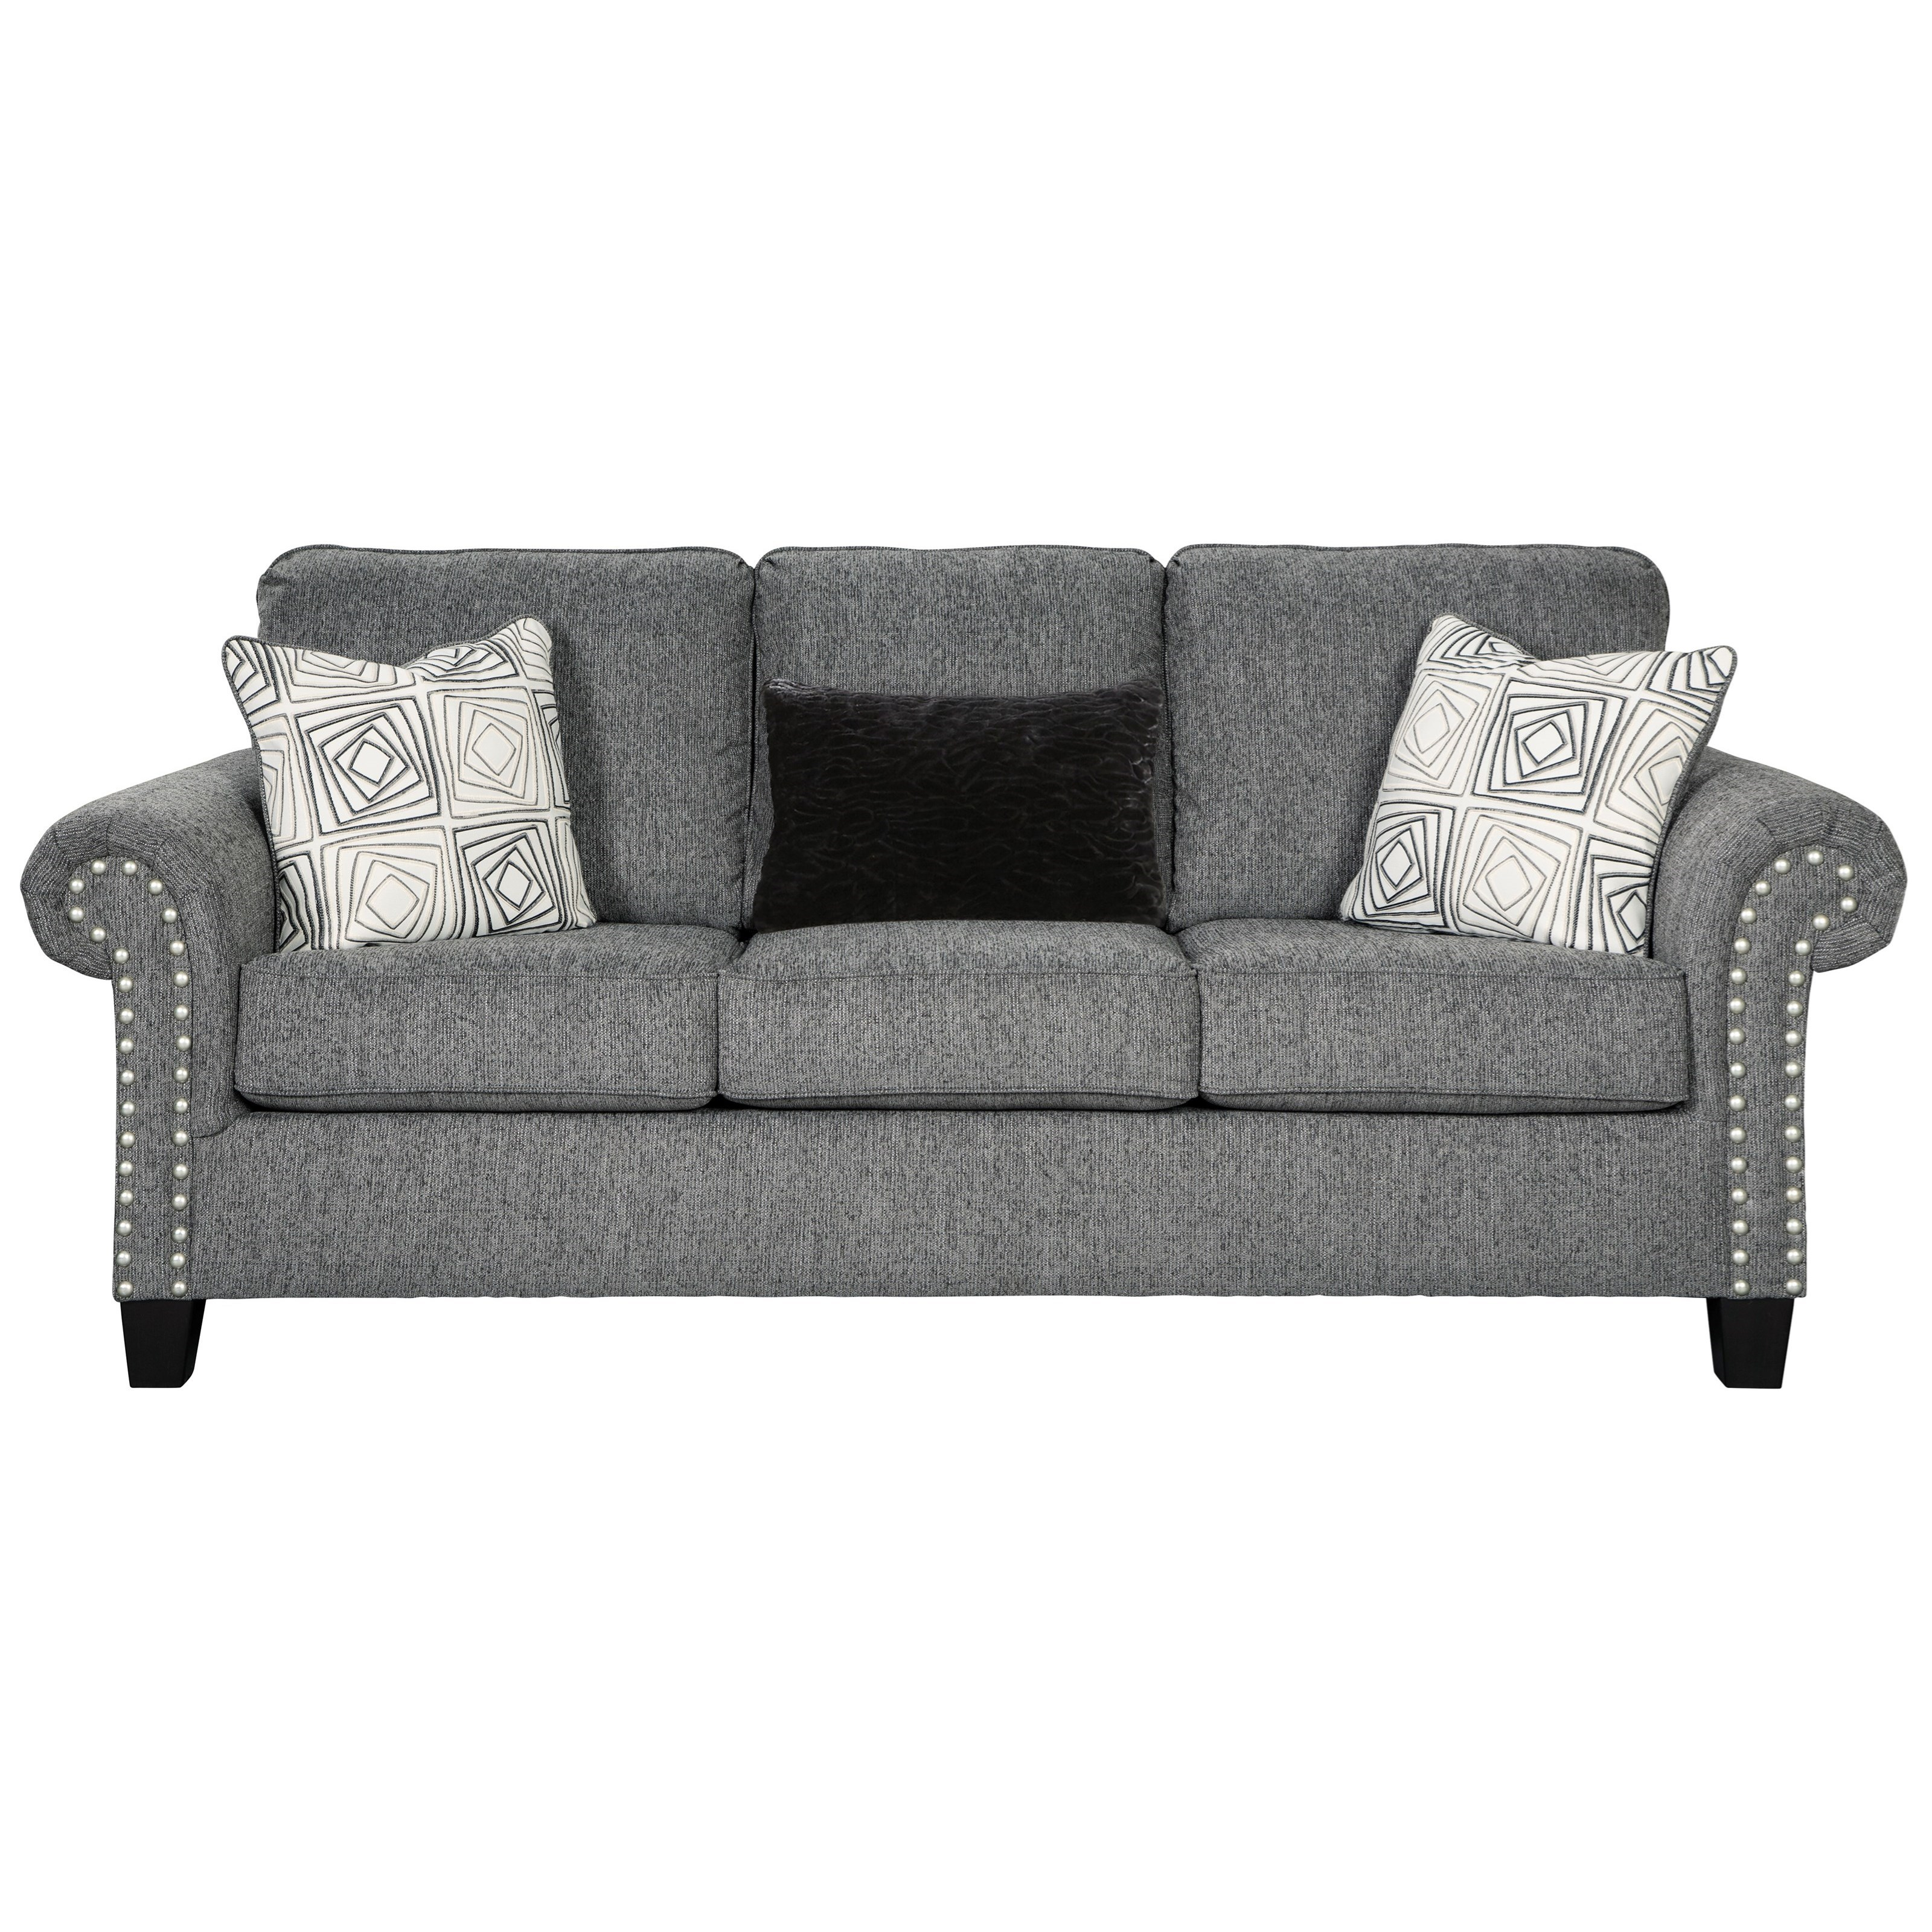 Agleno Sofa by Benchcraft at Miller Waldrop Furniture and Decor